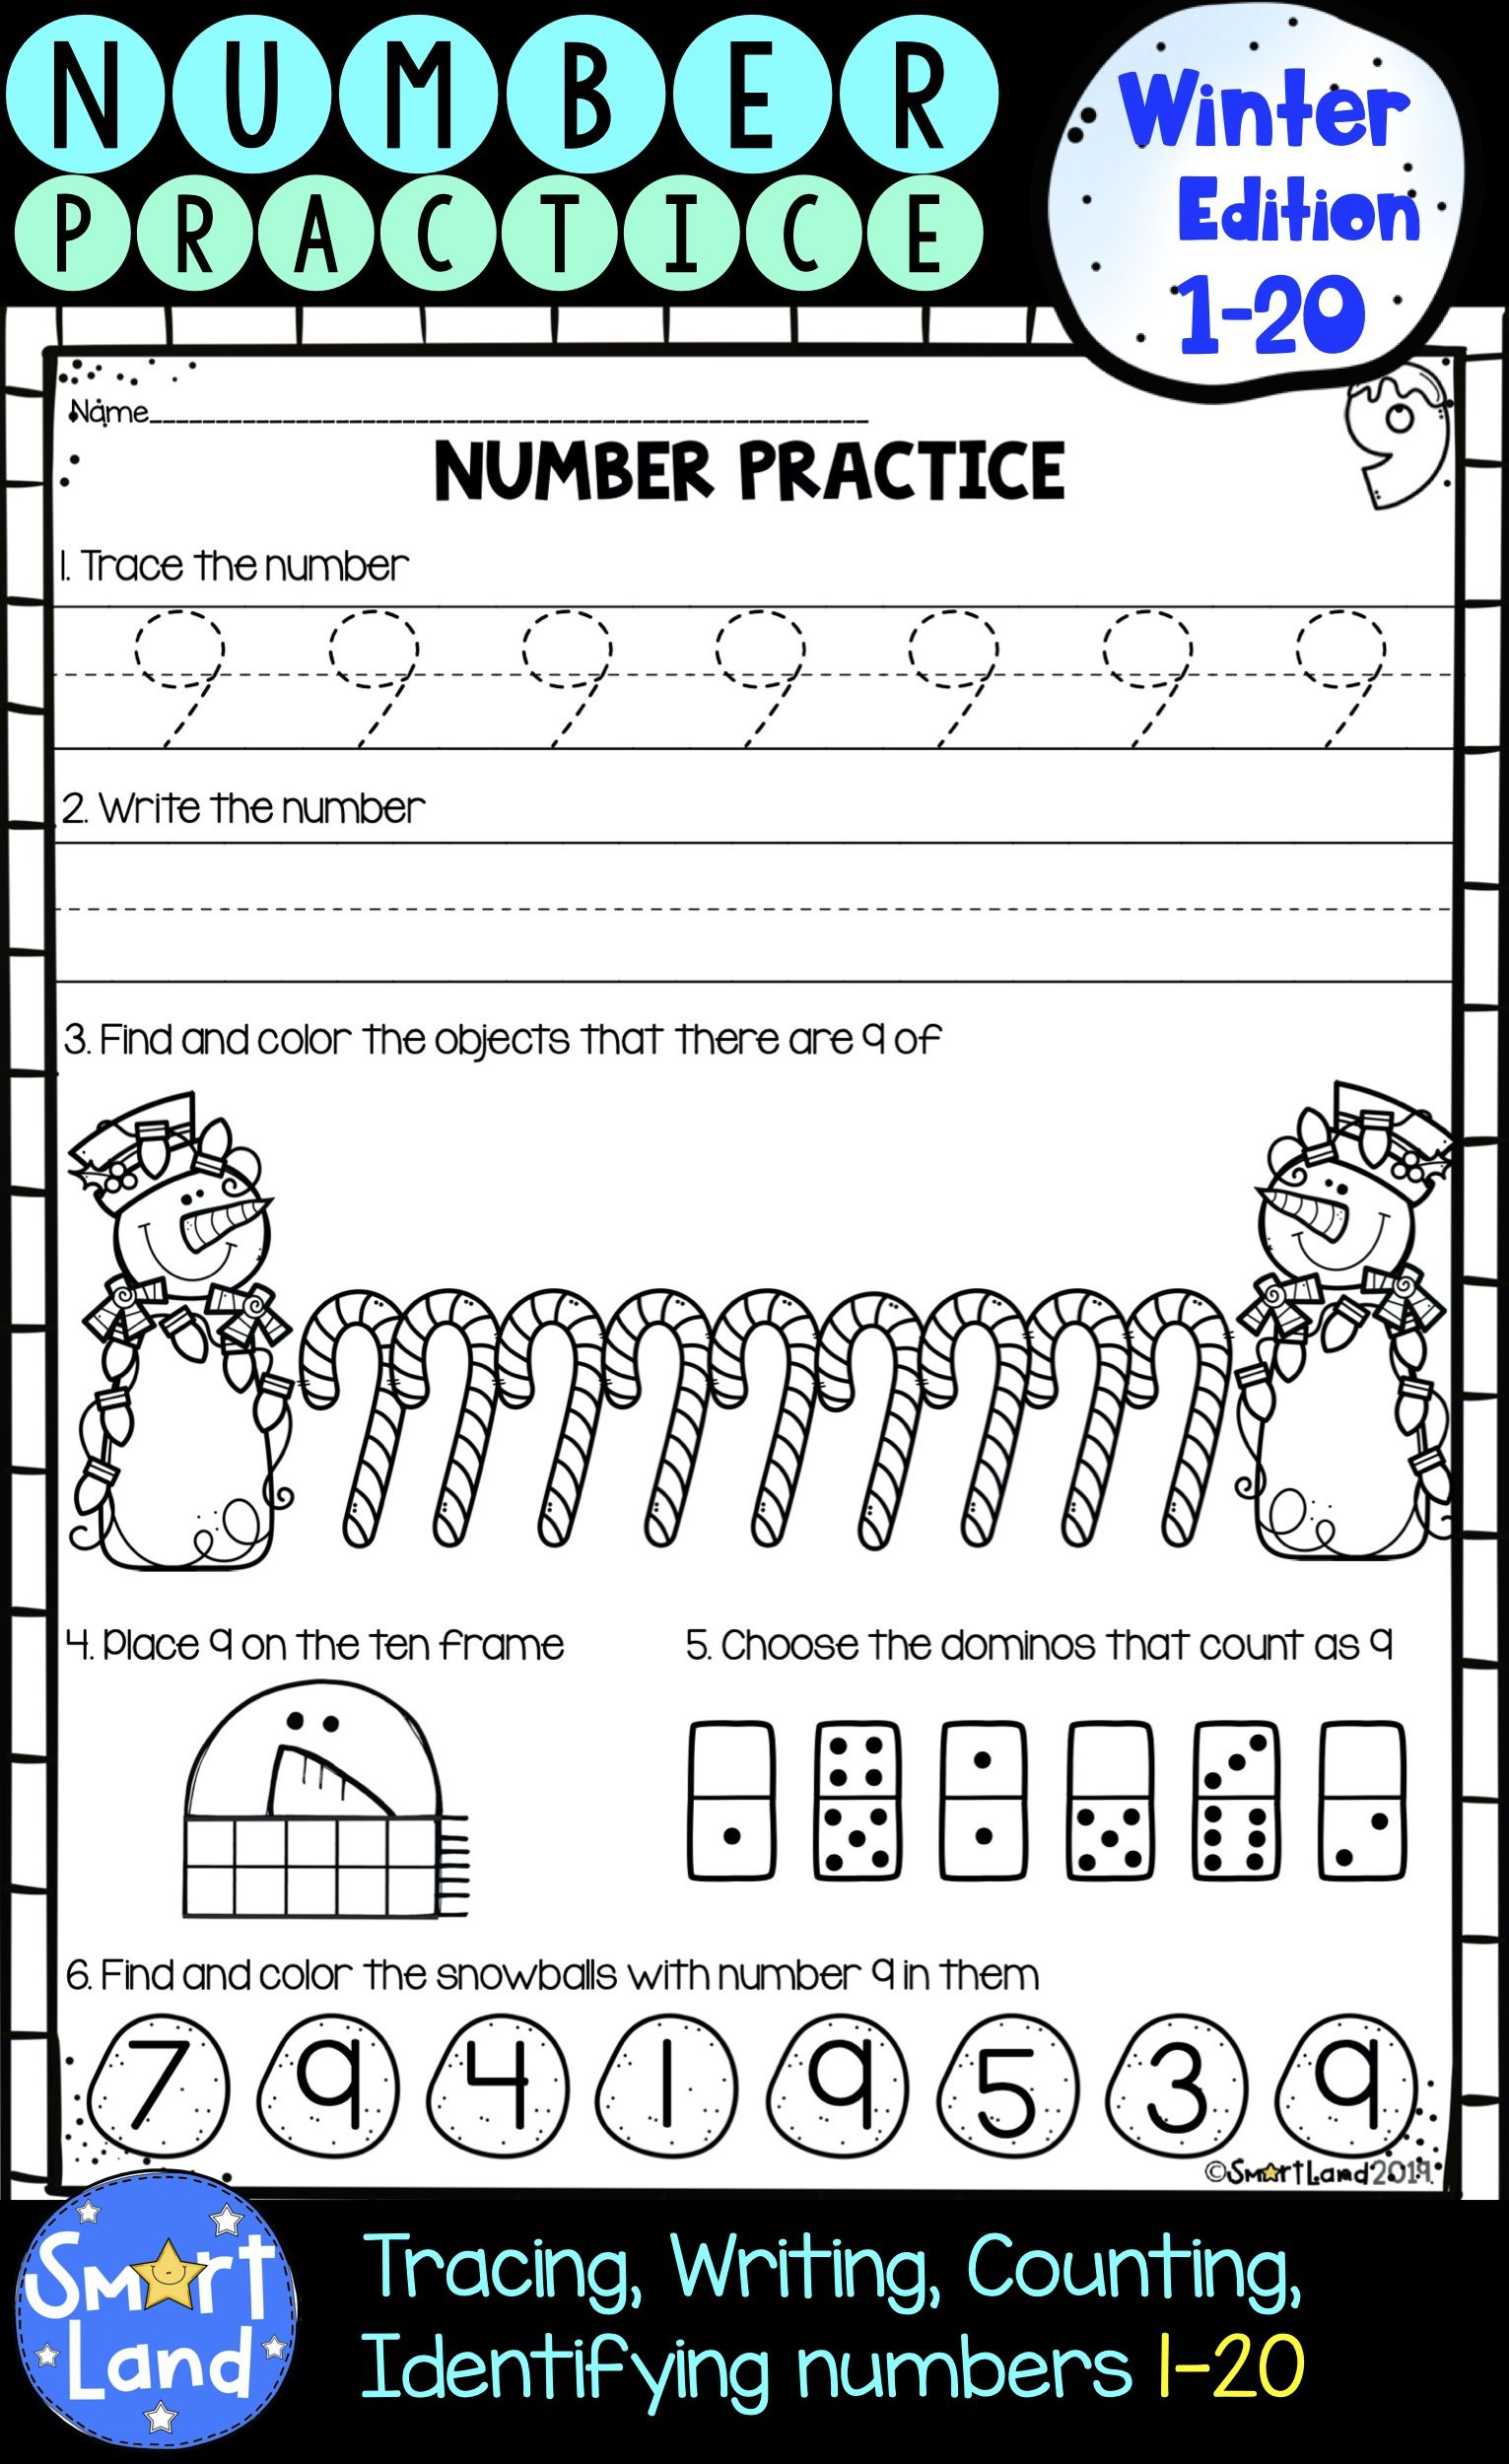 Numbers 1 20 Handwriting And Counting Practice Worksheets Winter Edition Preschool Math Worksheets Writing Numbers Writing Practice